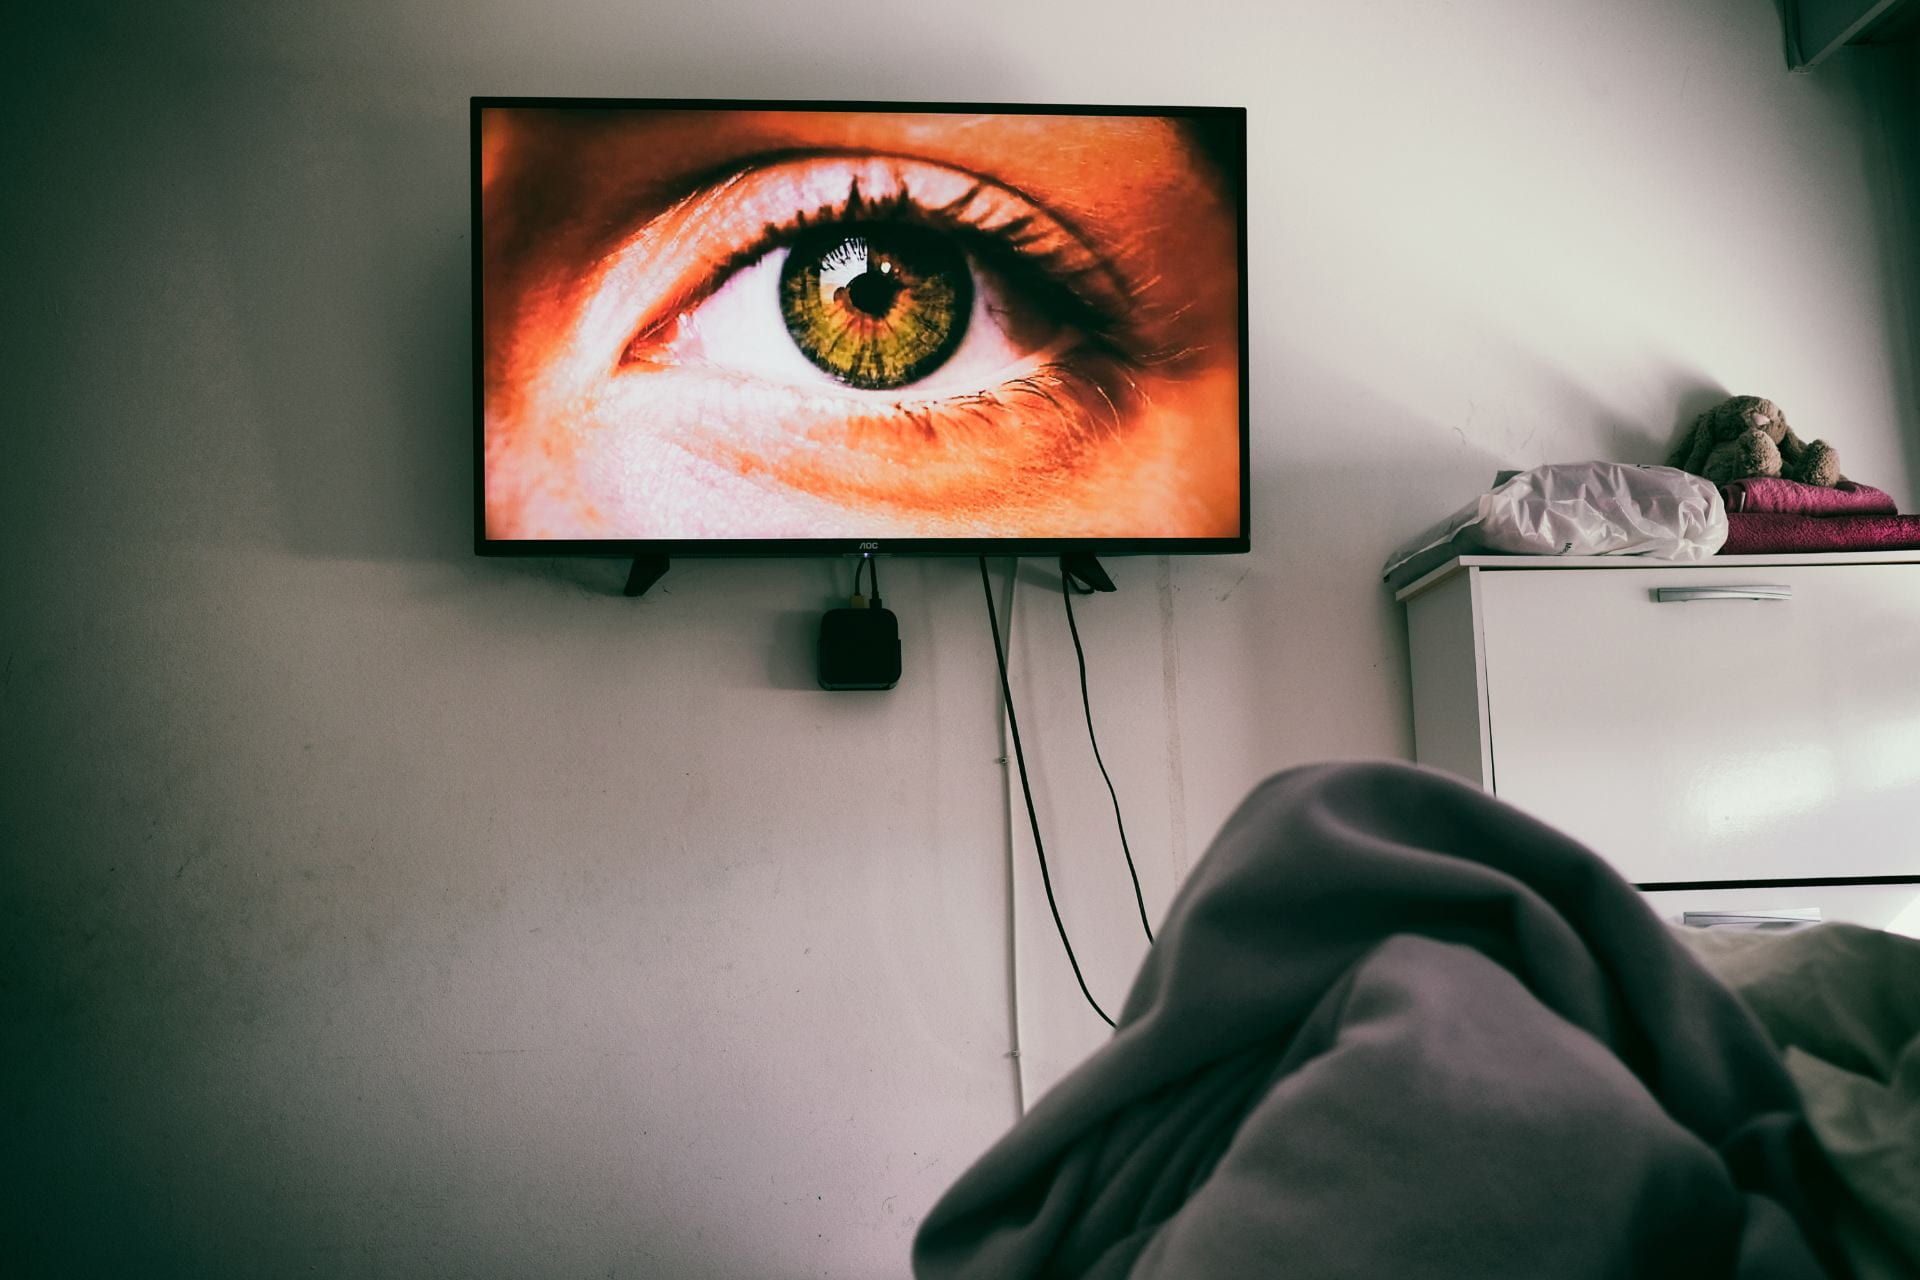 portrait of an eye on a TV screen